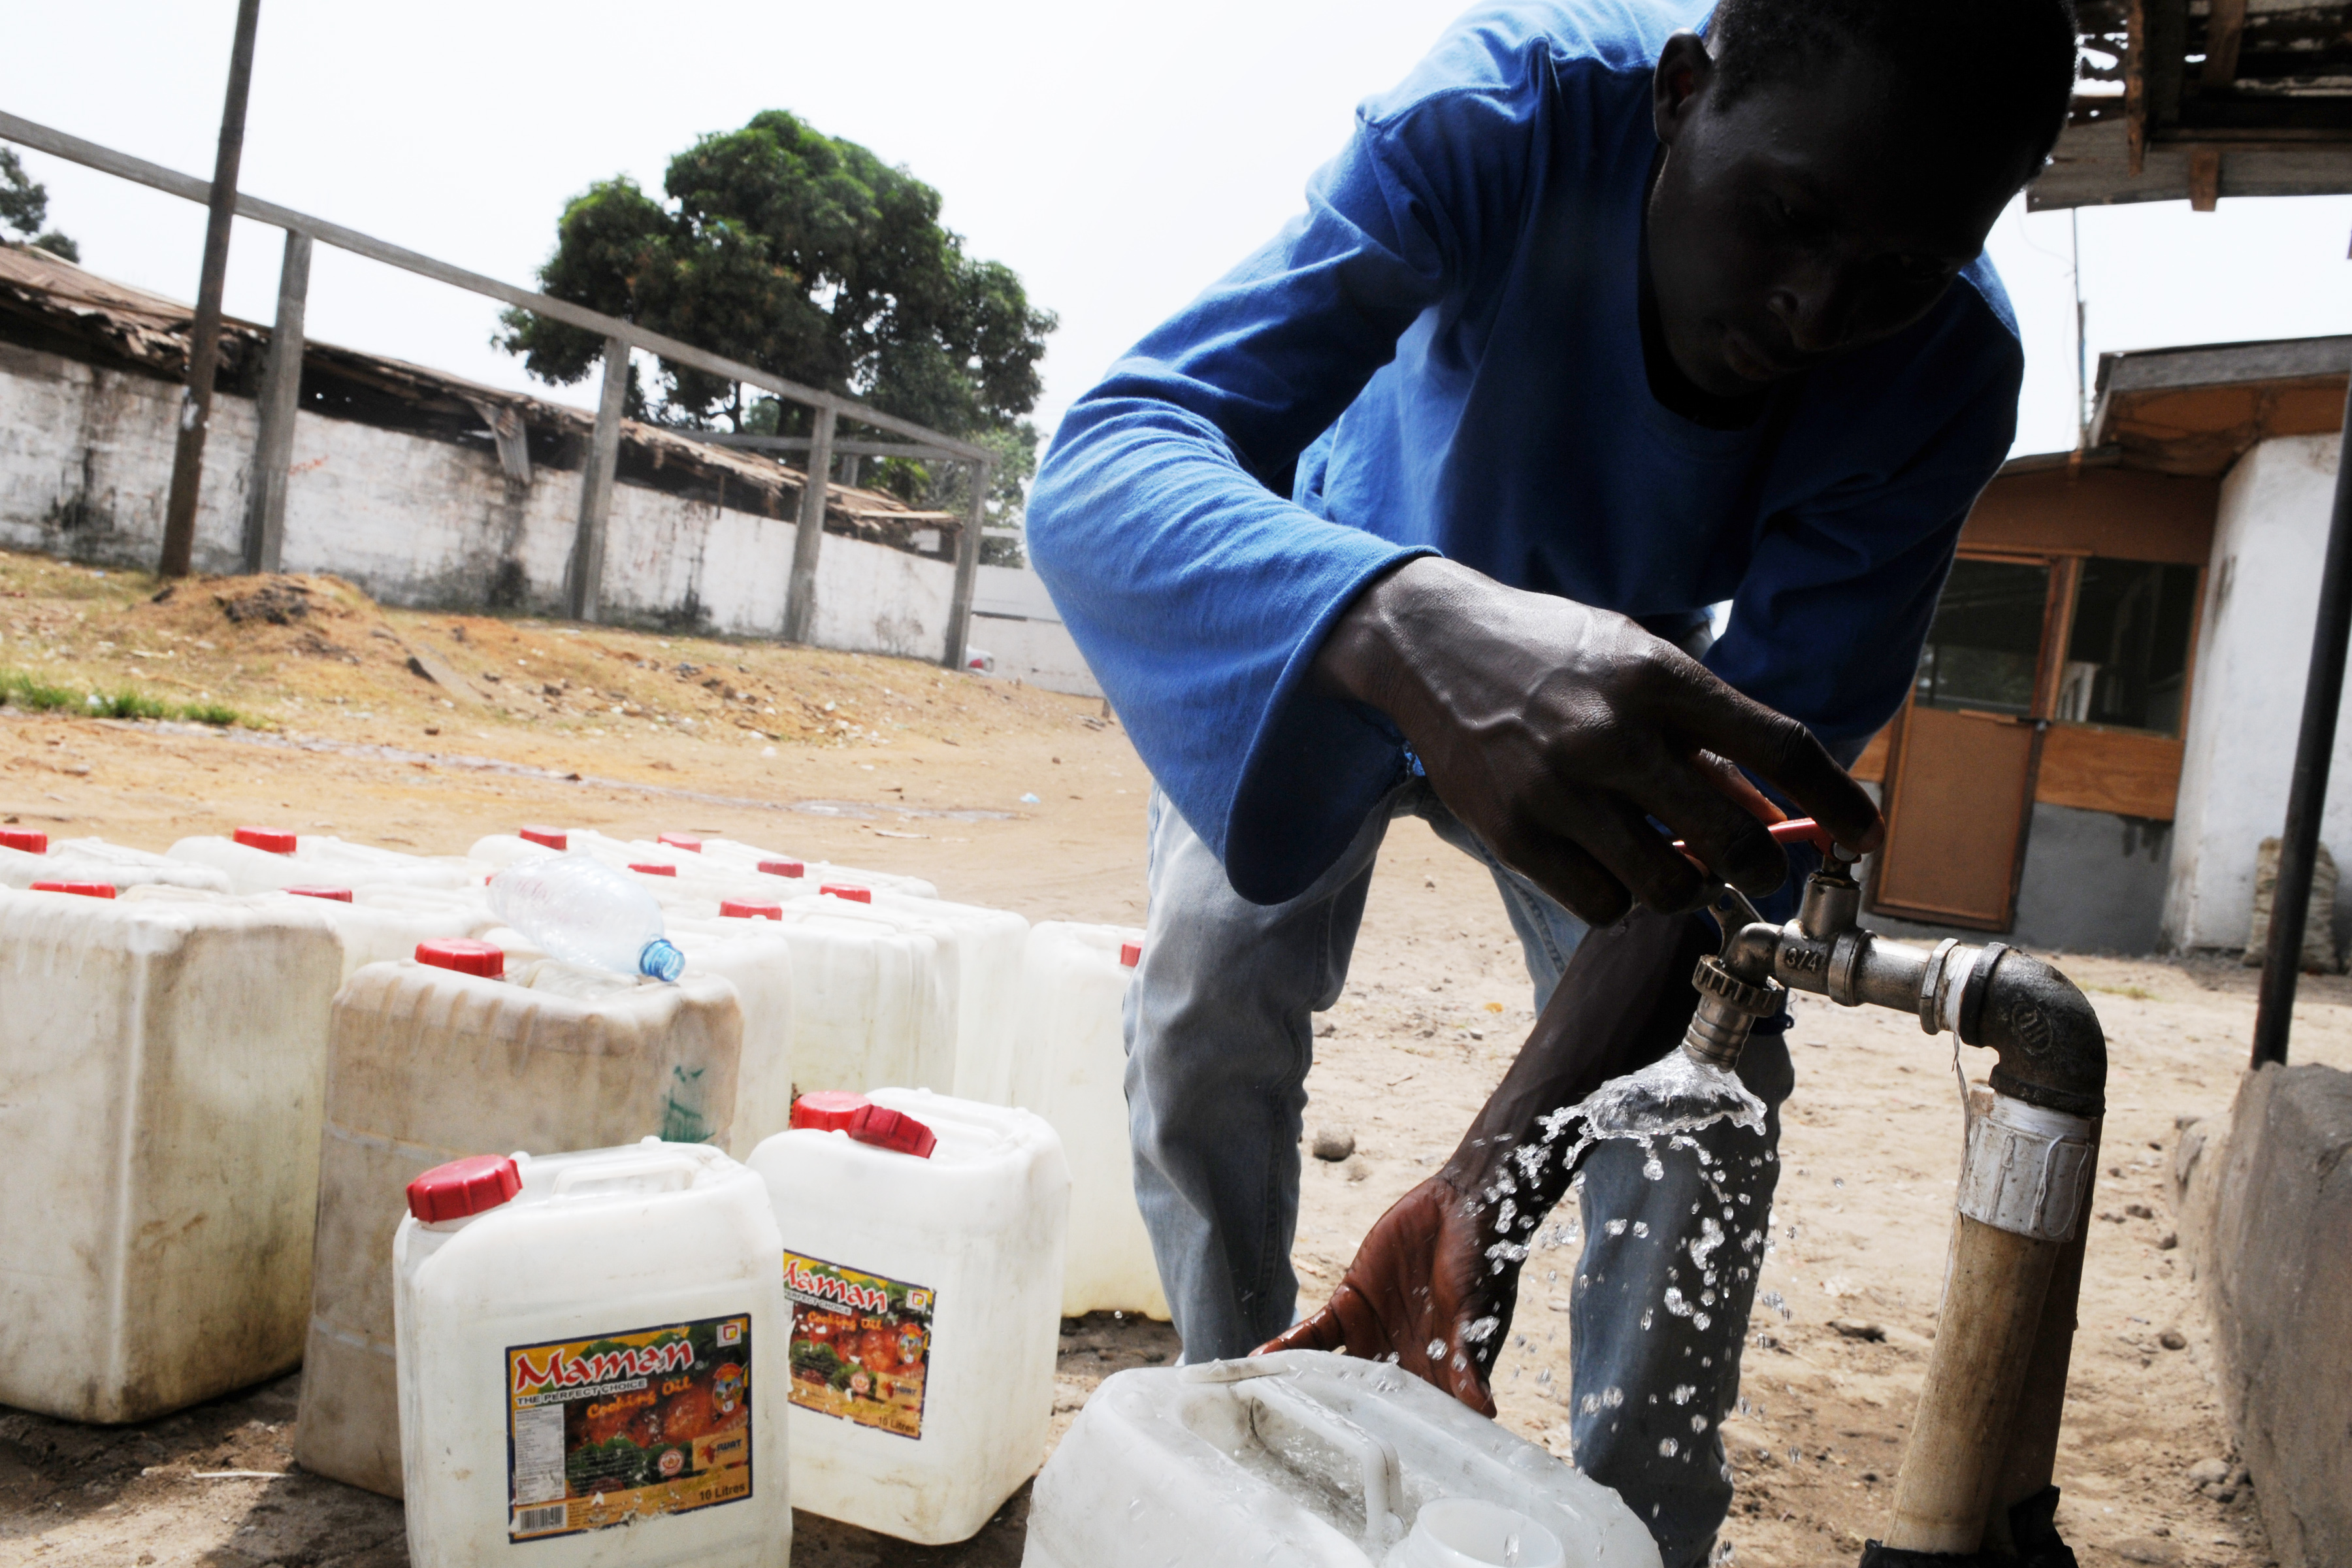 Collecting water tap in Liberia. UN Photo/Emmanuel Tobey